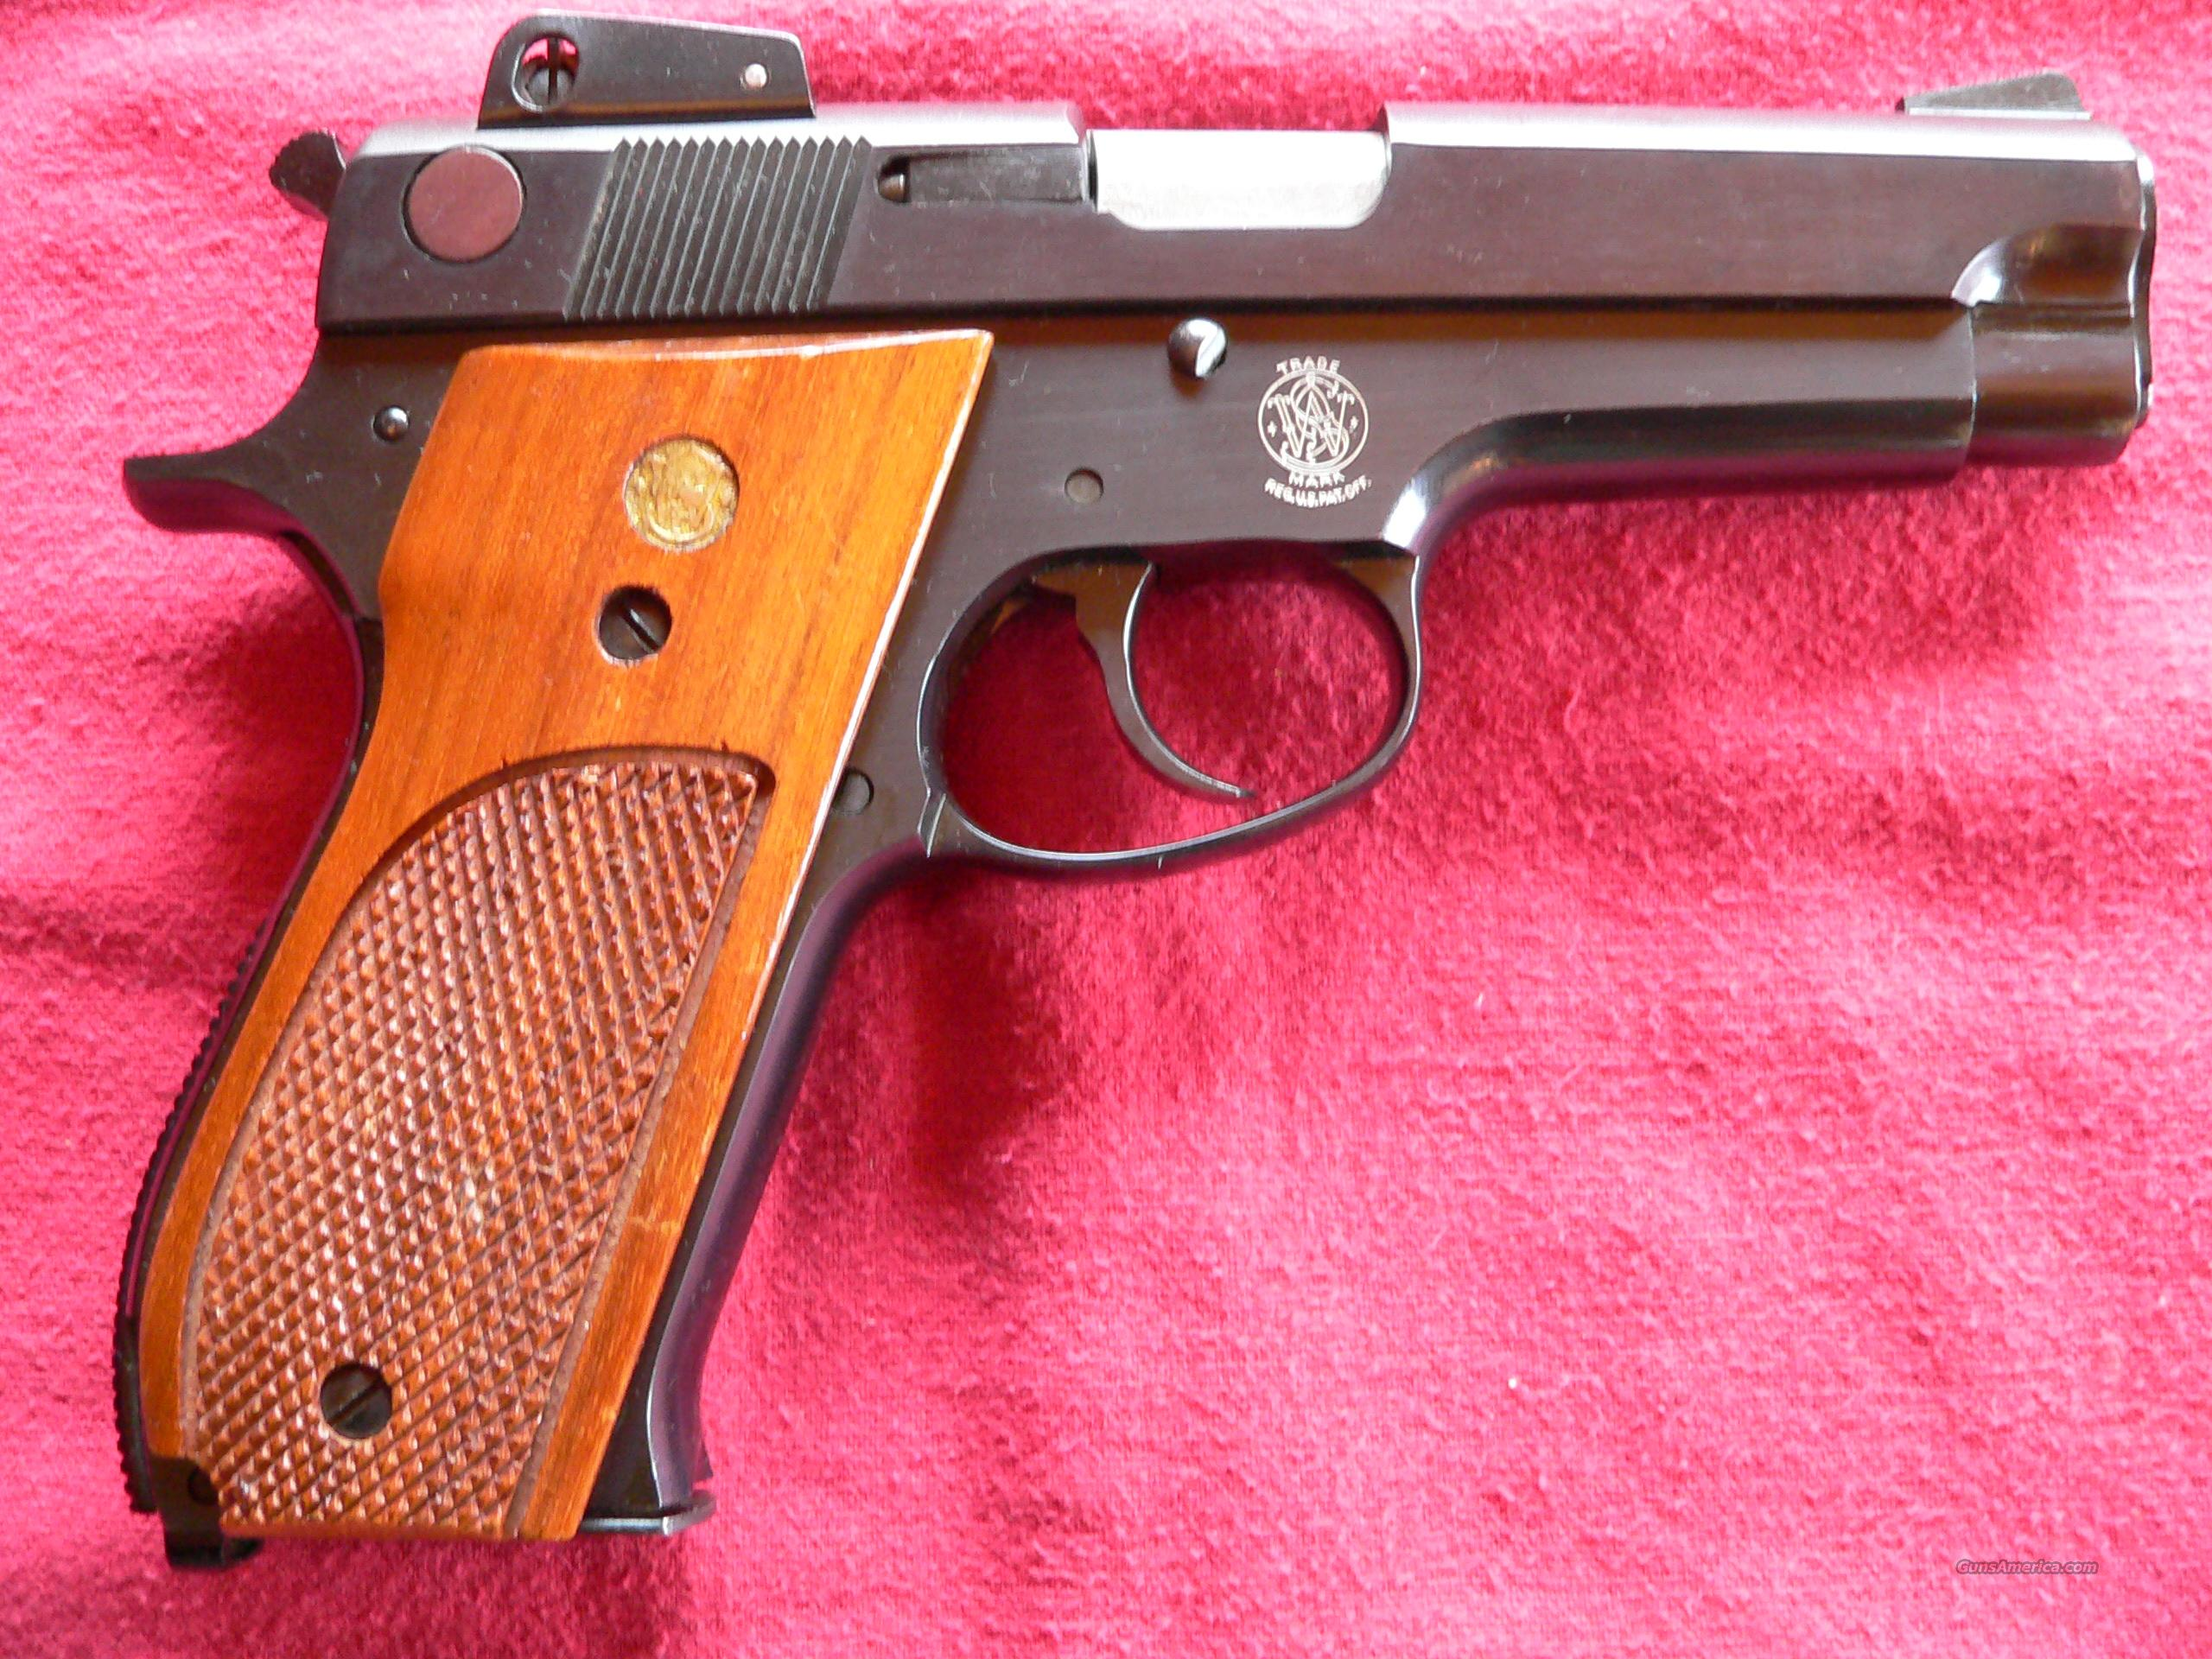 Smith & Wesson Model 539 cal. 9MM 8-shot Pistol  Guns > Pistols > Smith & Wesson Pistols - Autos > Steel Frame